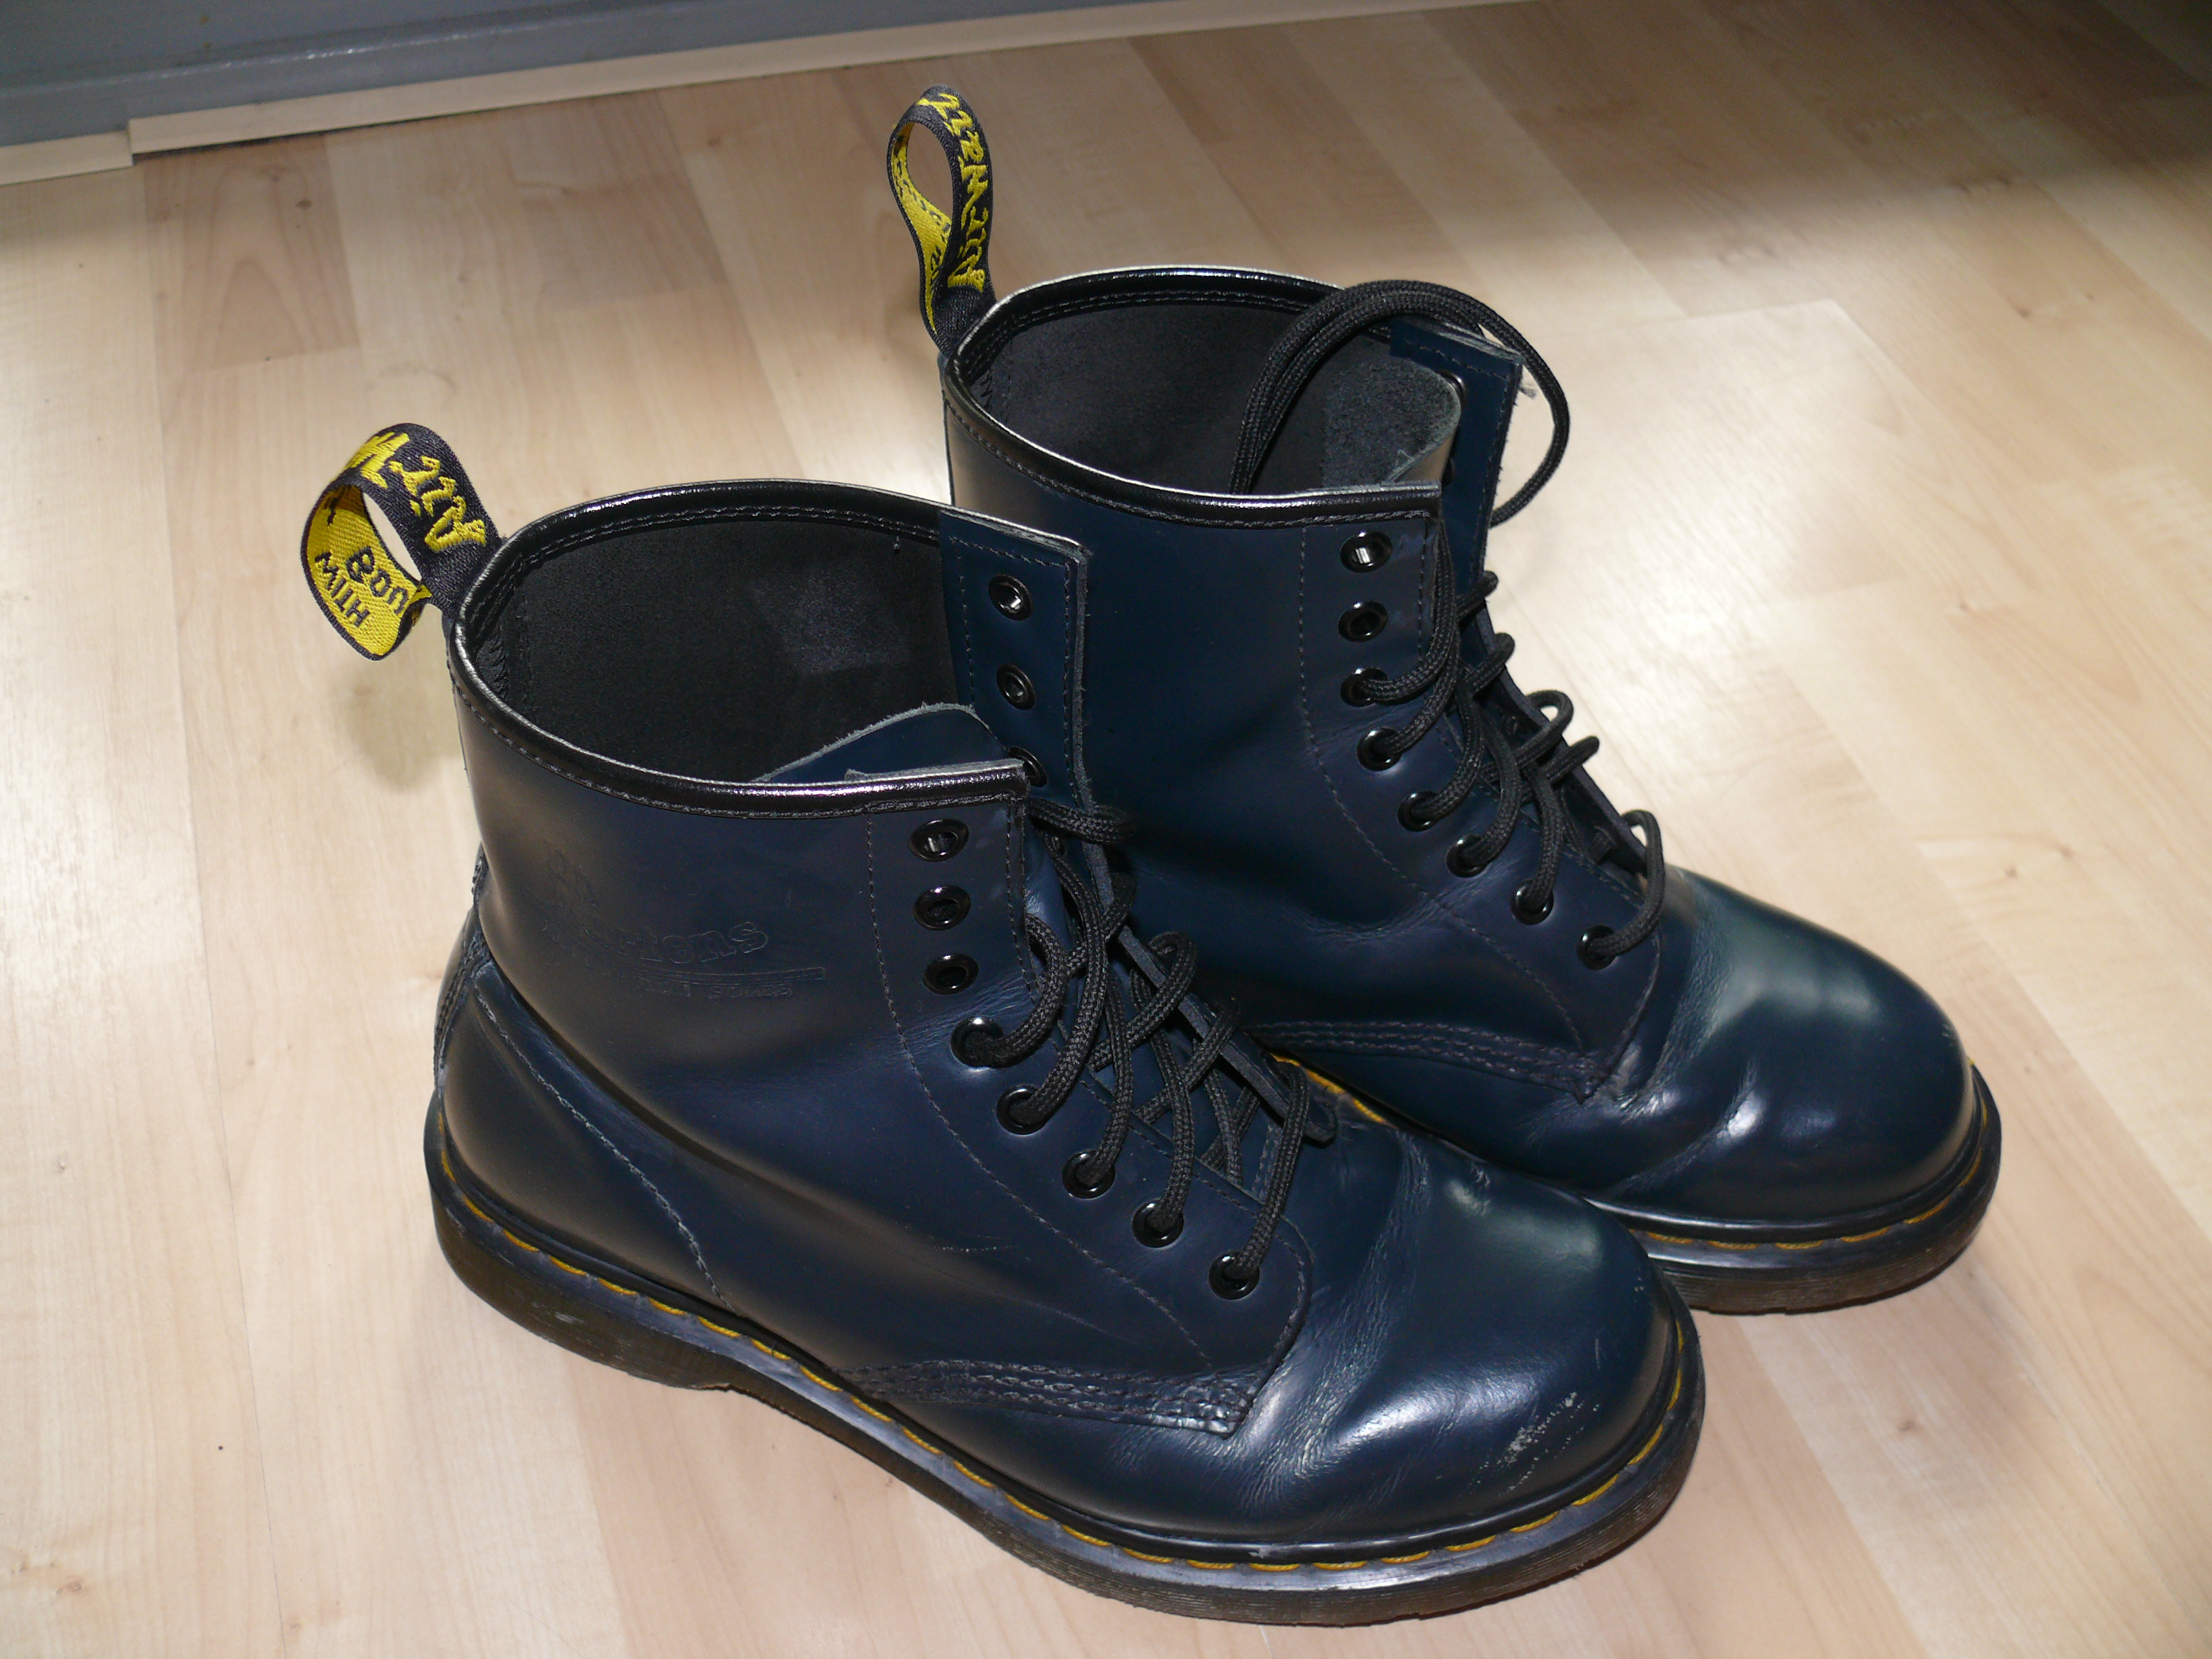 Best Boots For Dog Walking Uk